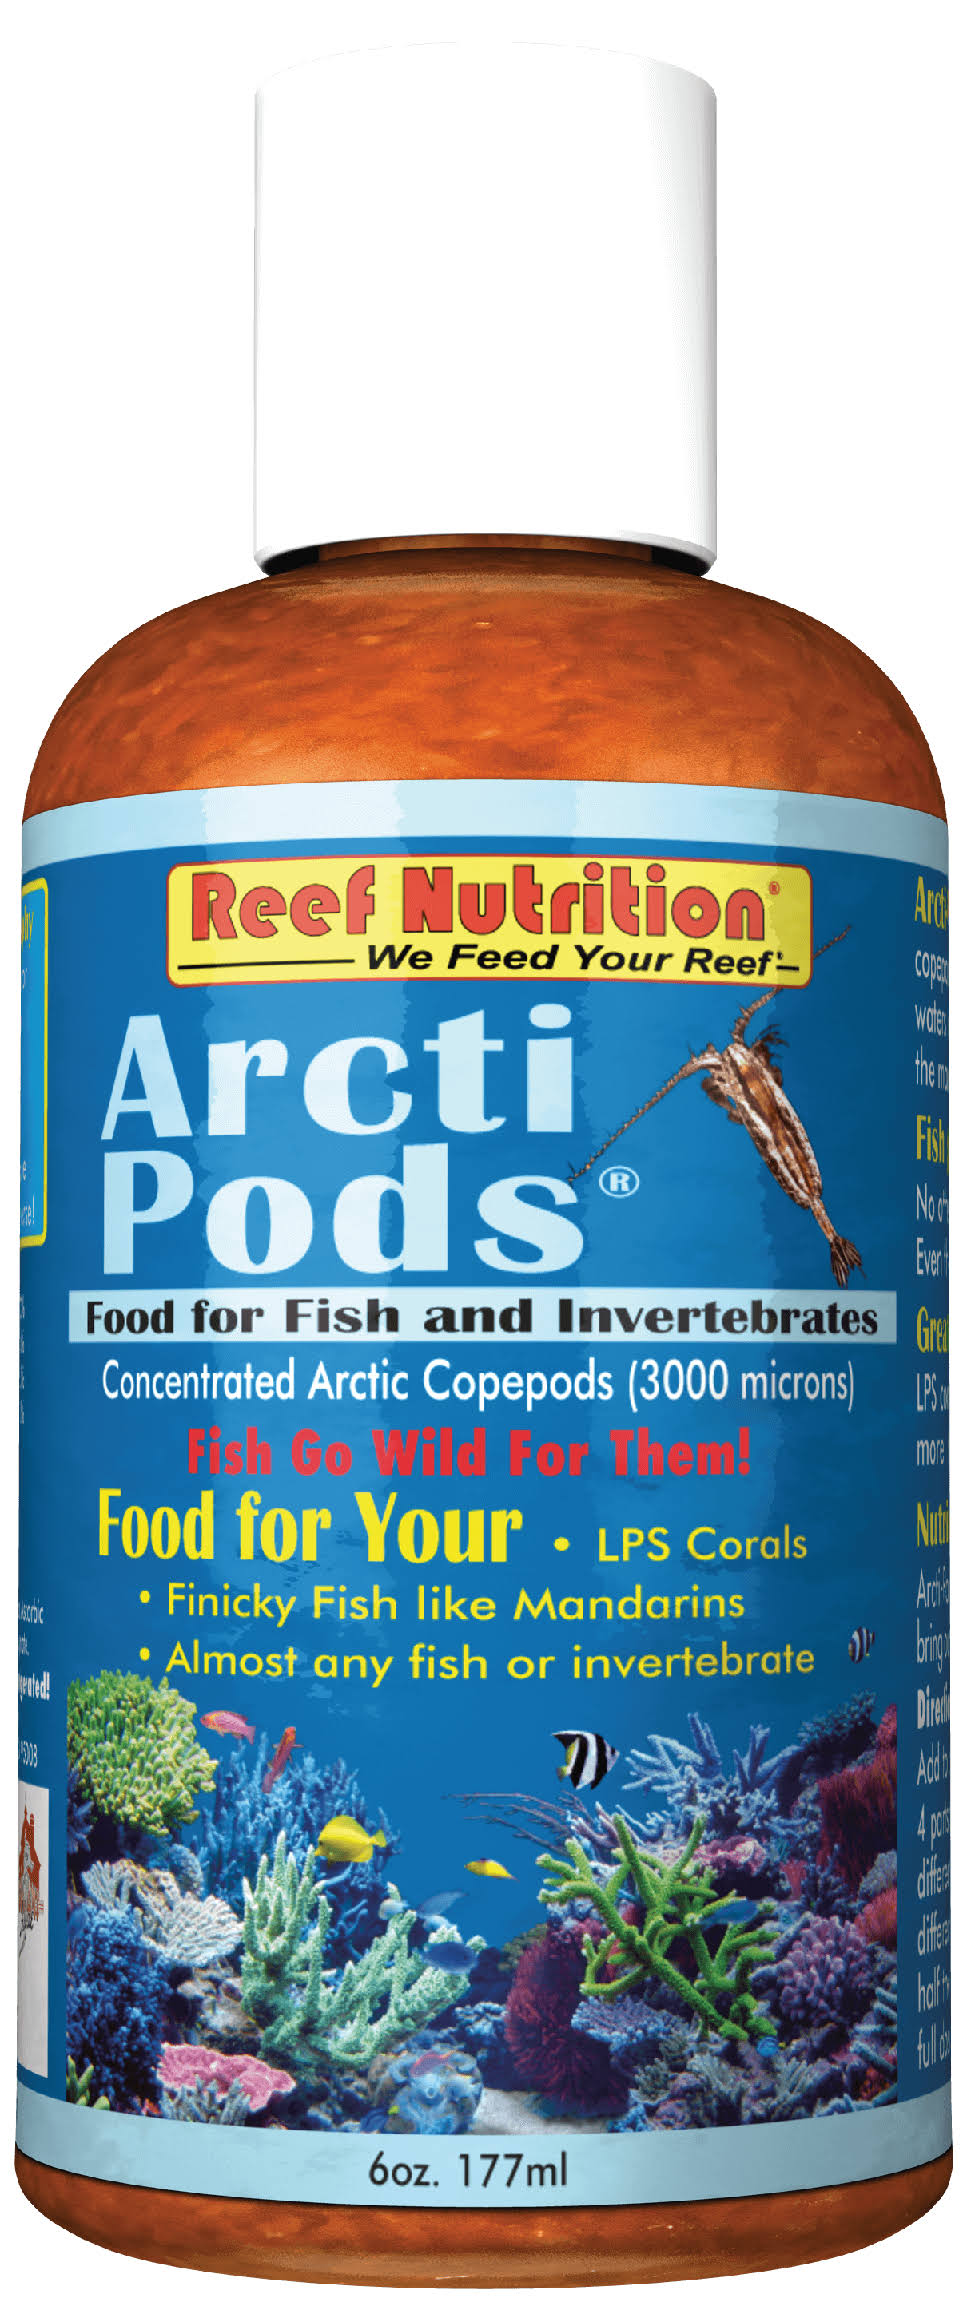 Reef Nutrition Arcti Pods Fish Food - 6oz